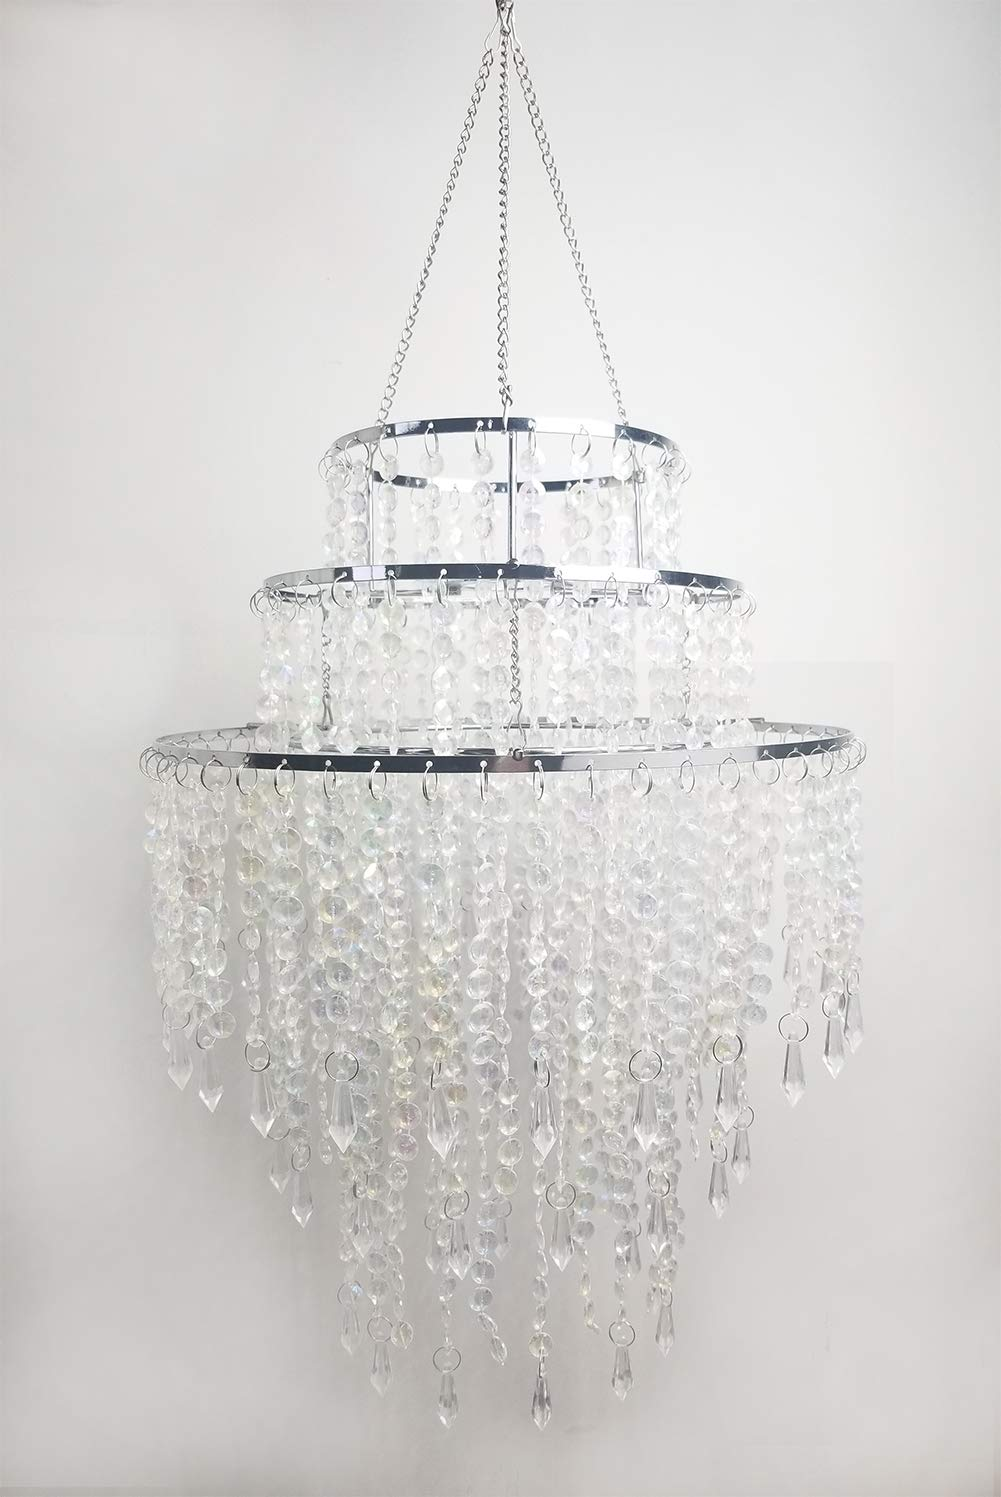 SUNLI HOUSE 3 Tiers Sparkling Acrylic Beaded Pendant Shade, Ceiling Chandelier Lampshade with Chrome Frame,12'' Diameter,Light not included